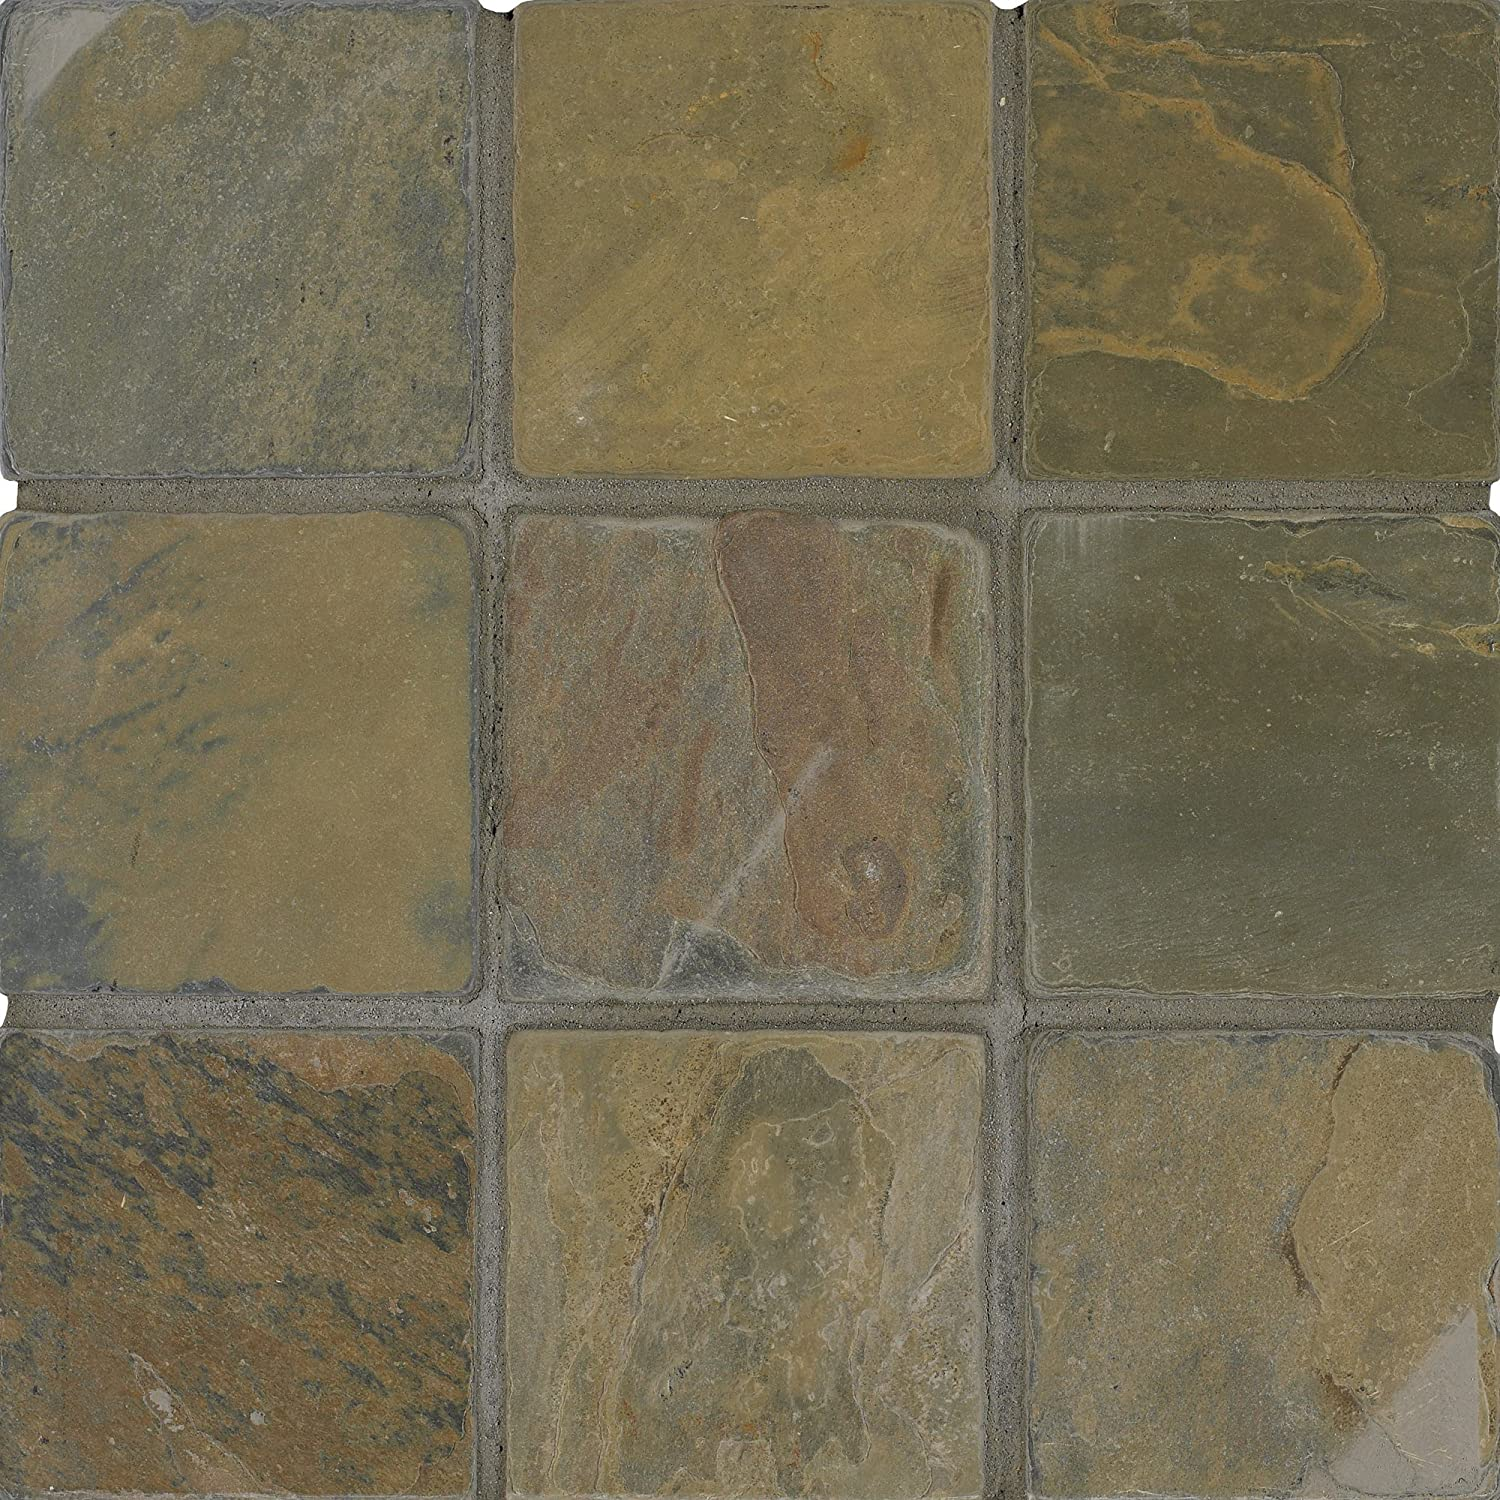 Arizona tile 4 by 4 inch tumbled slate tile rustic gold 6 total arizona tile 4 by 4 inch tumbled slate tile rustic gold 6 total square feet stone tiles amazon dailygadgetfo Gallery